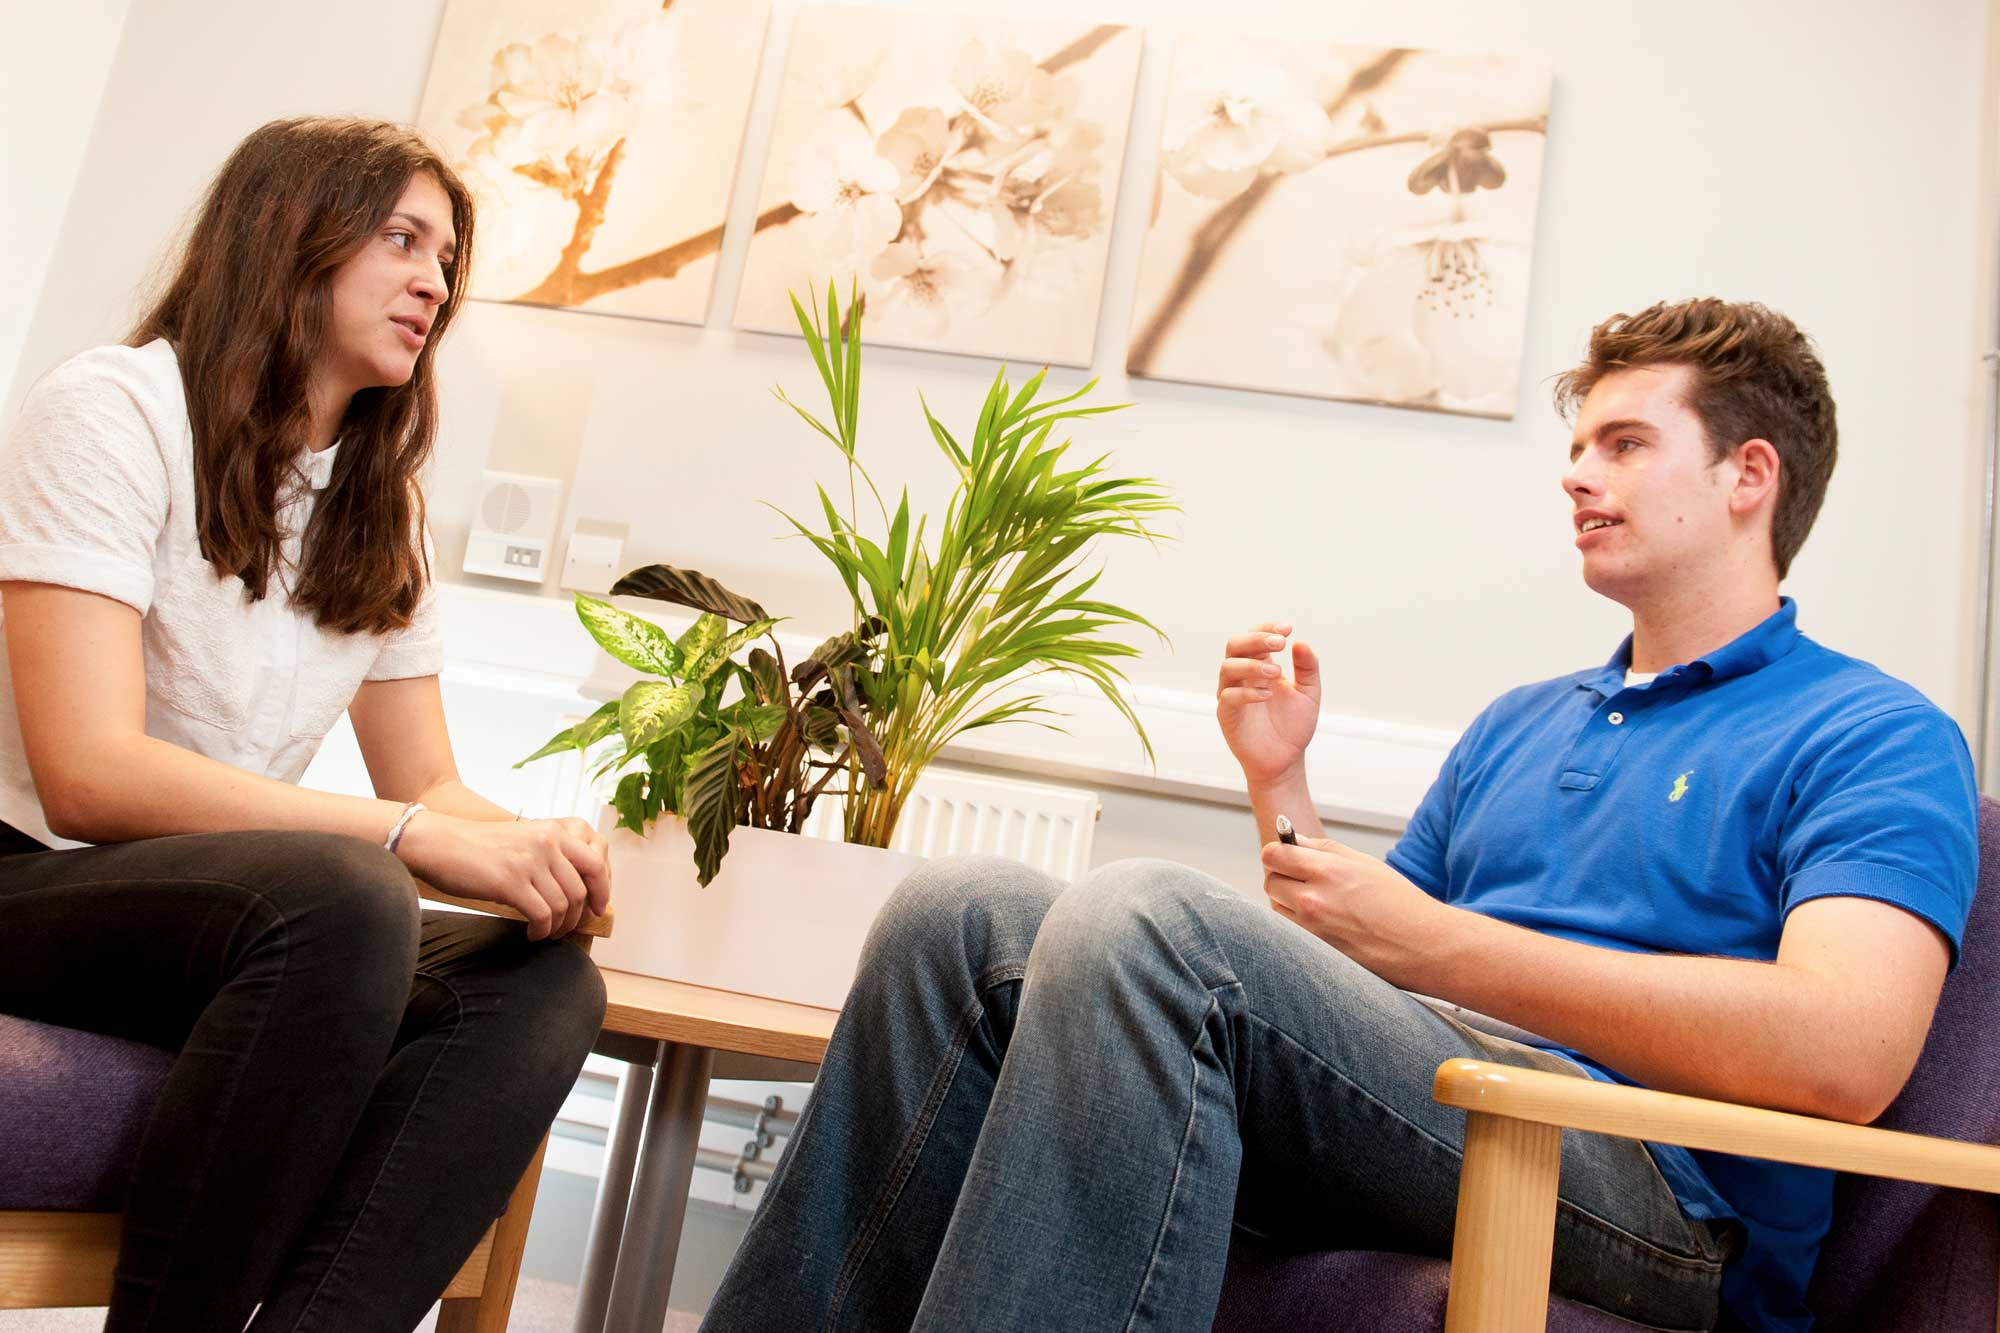 Interview taking place in the counselling room